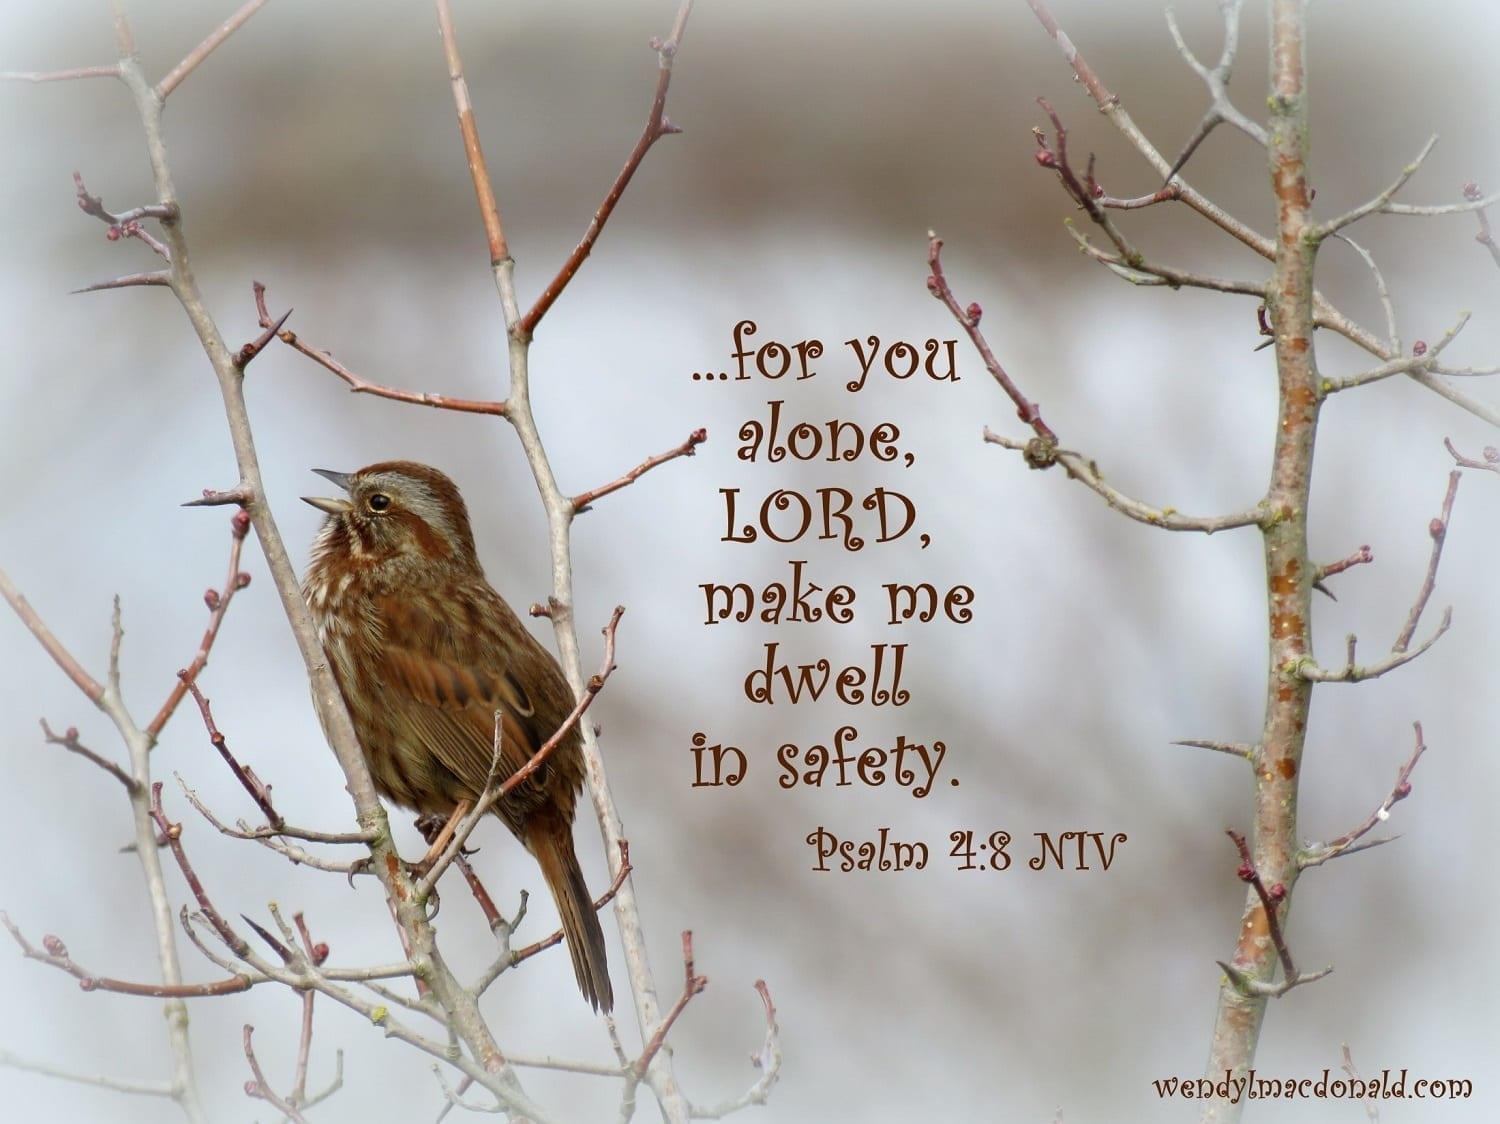 Sparrow with Psalm 4:8, Photo credit: Wendy MacDonald